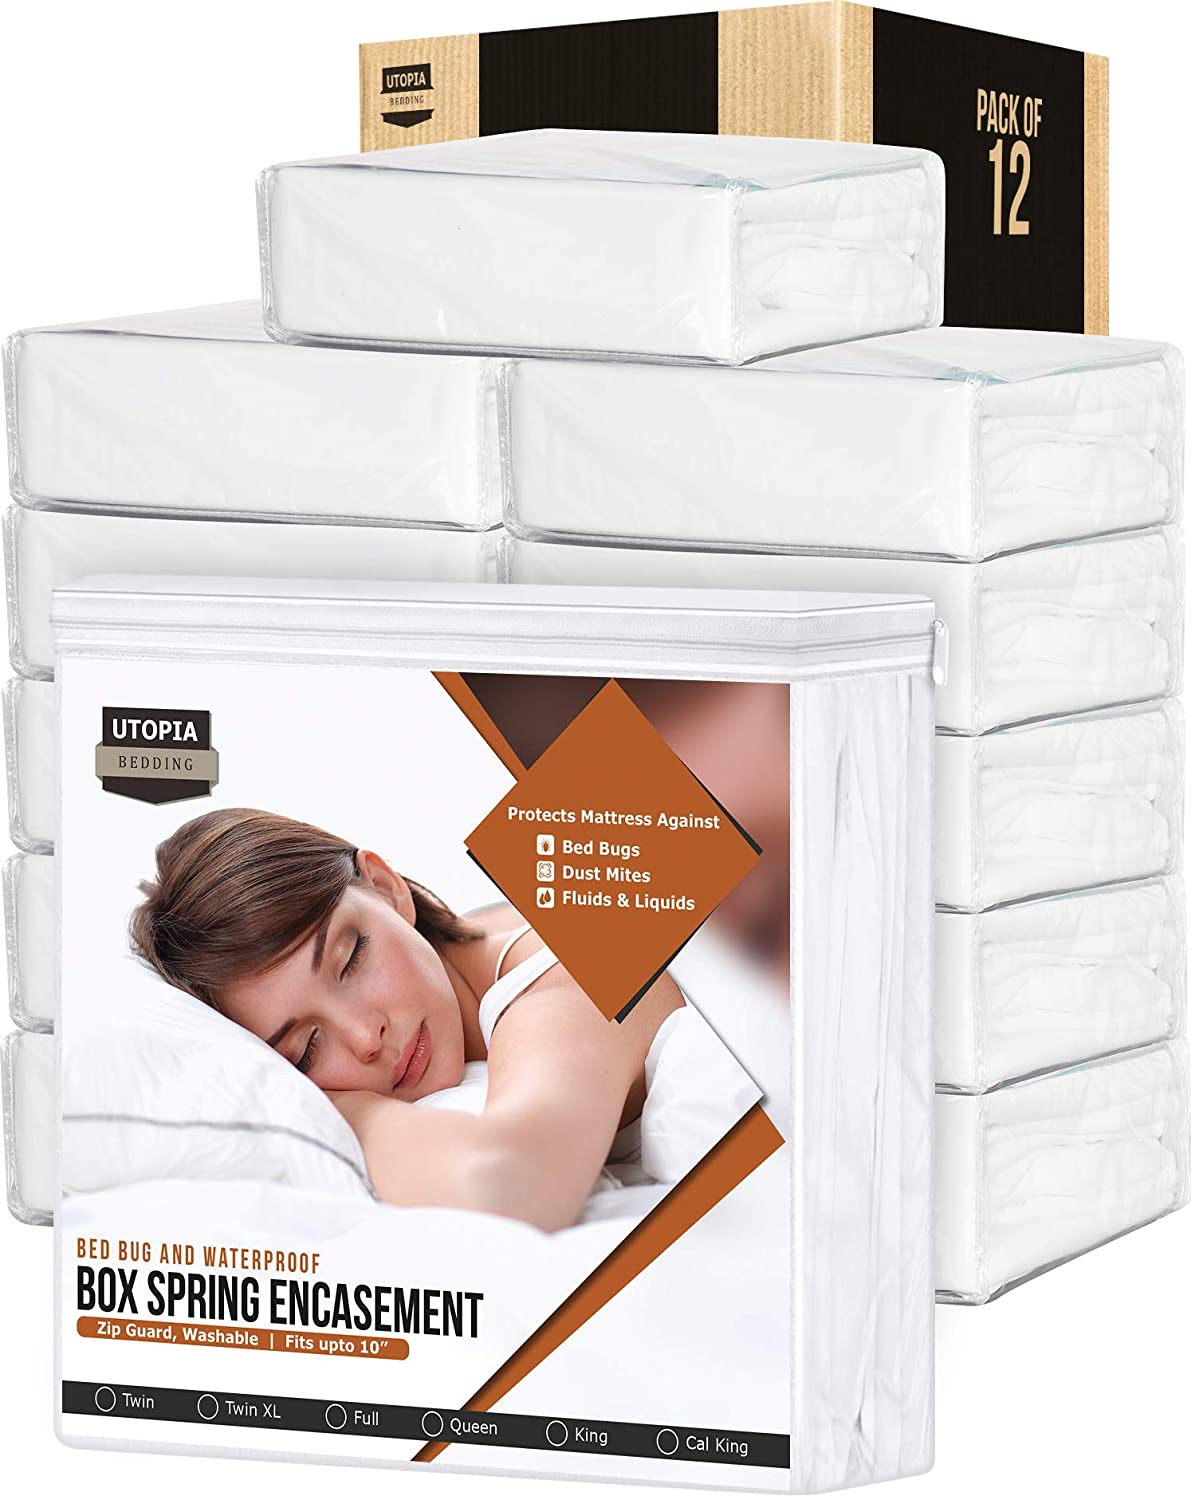 Utopia Bedding Box Spring Encasement – Bed Bug Proof Protector – Knitted Mattress Cover (Bulk Pack of 12, Twin).